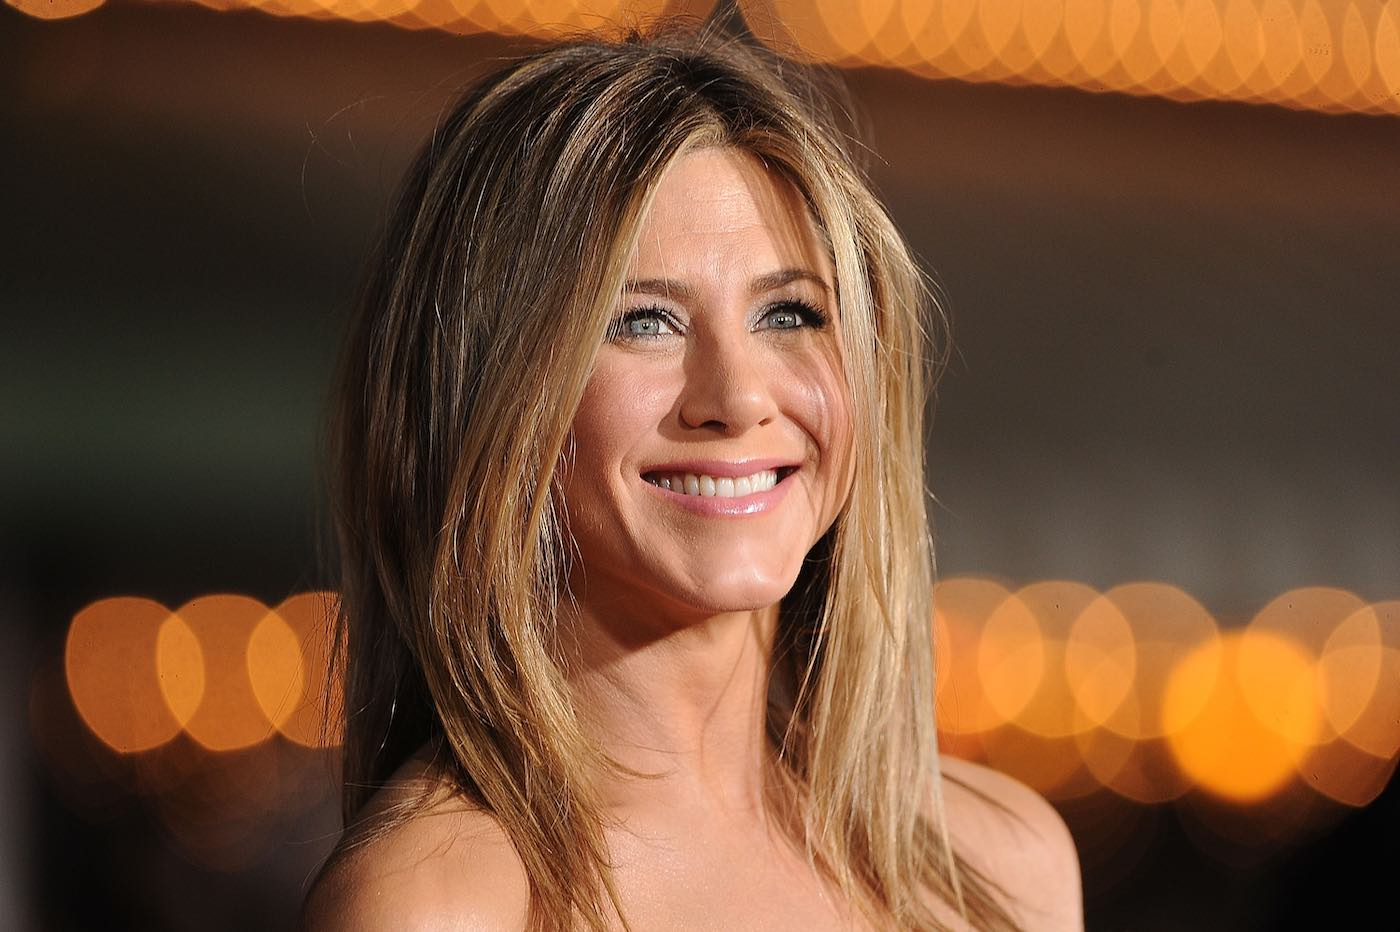 Jennifer Aniston Beauty Secrets That Make Her Ageless